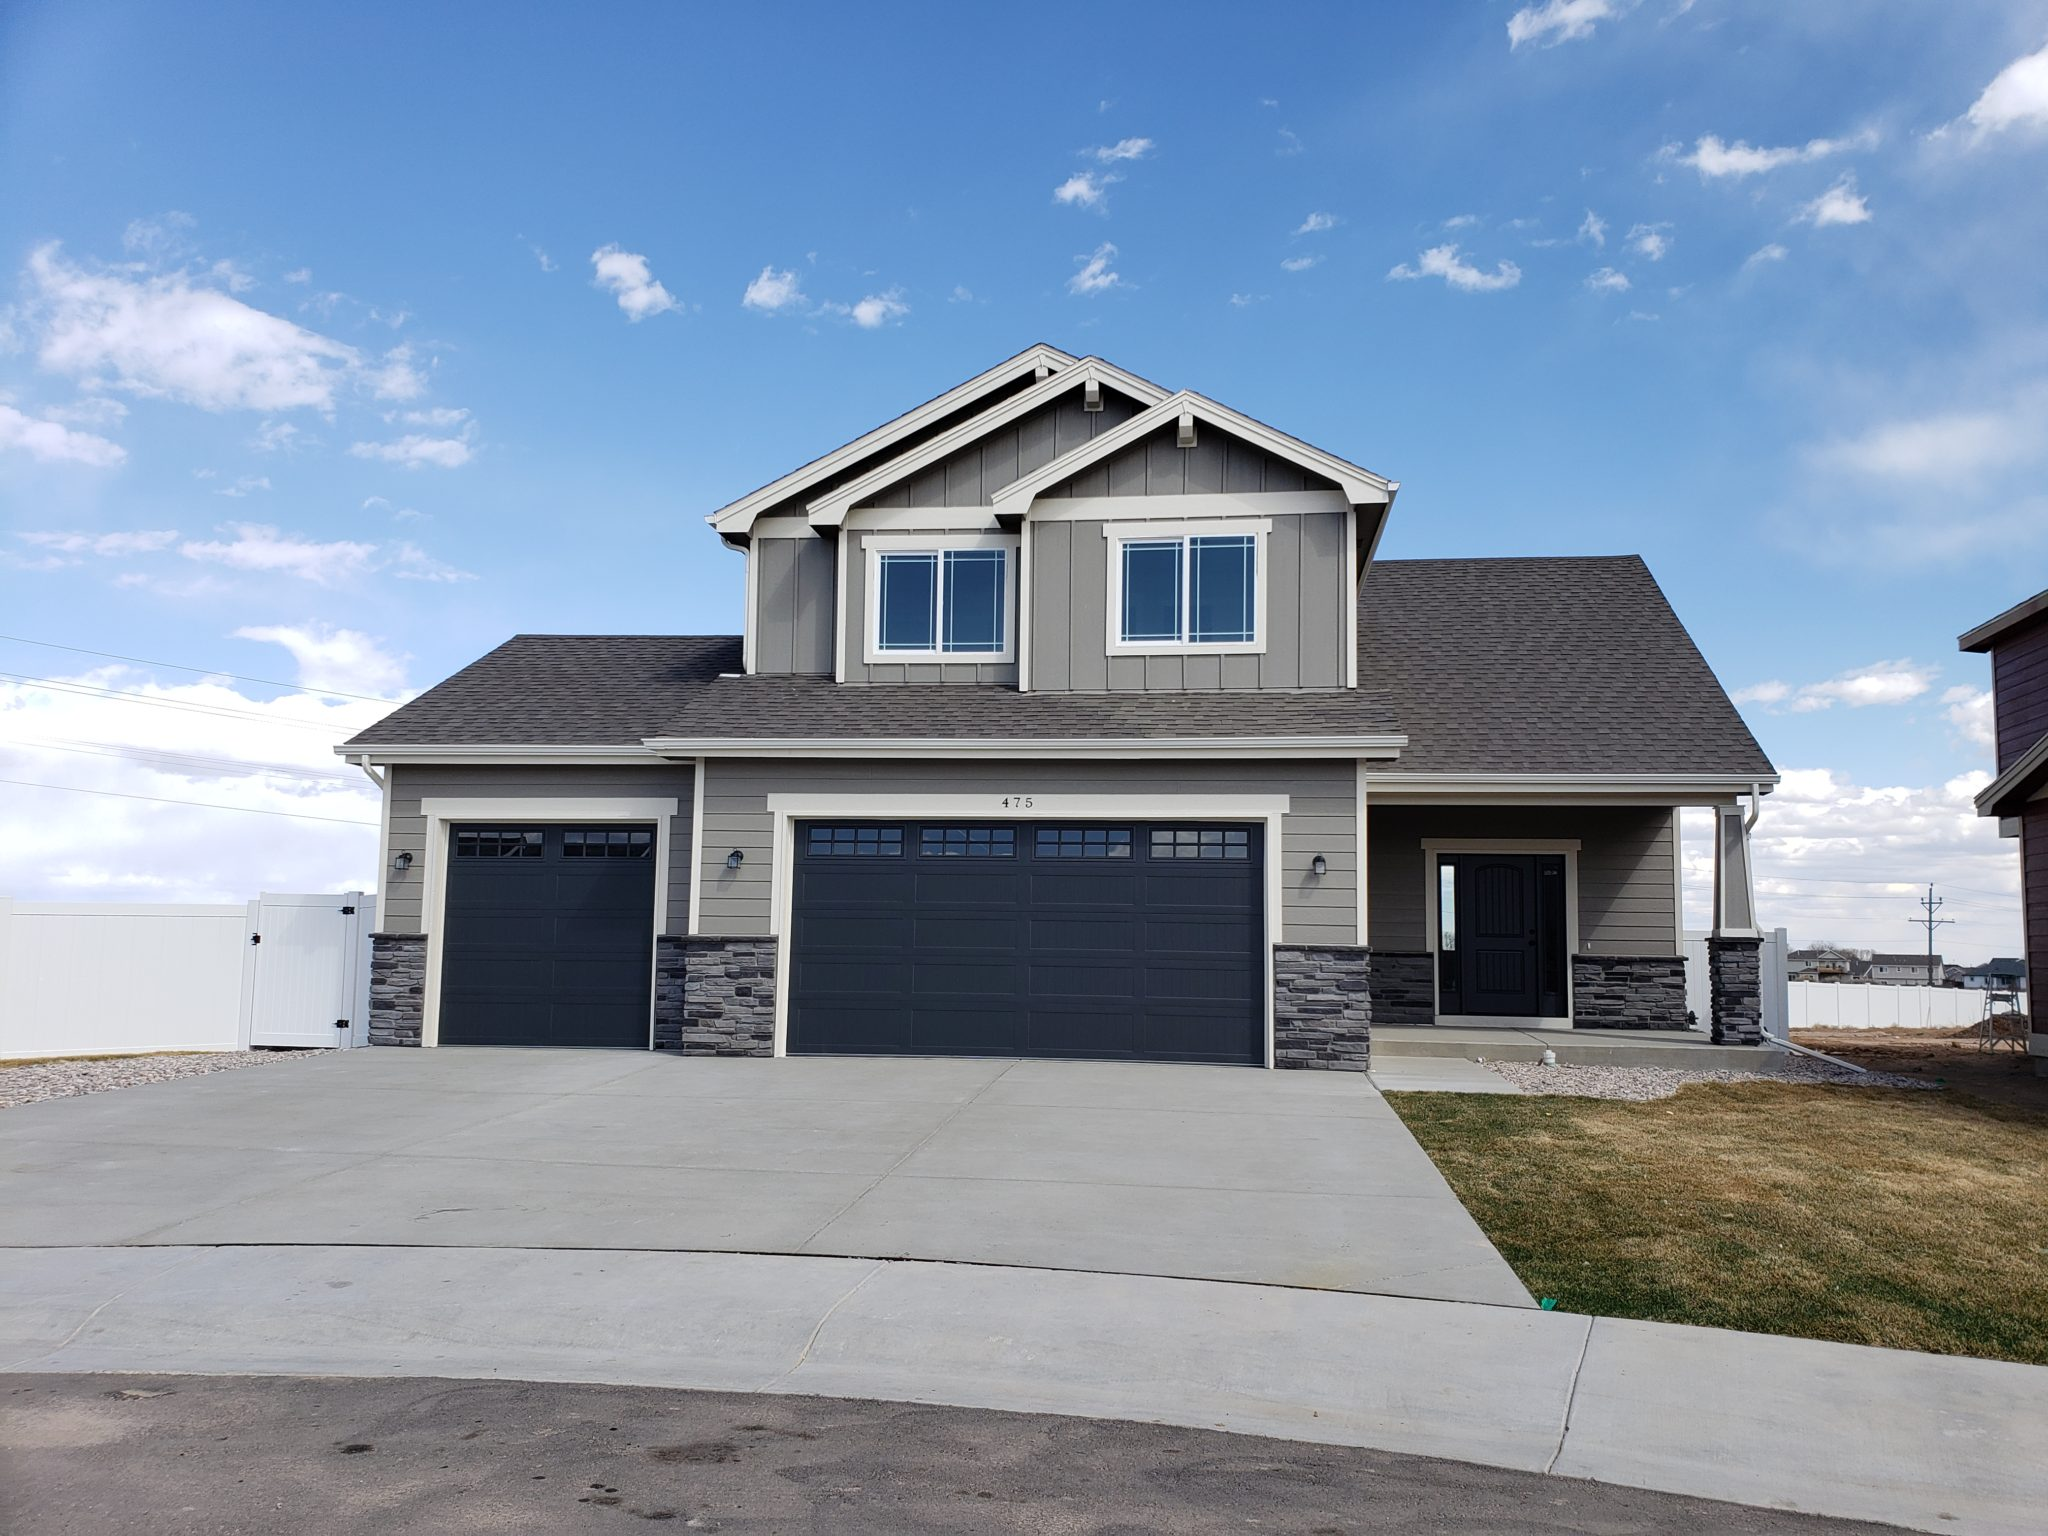 475 Deerfield Windsor, CO 80550